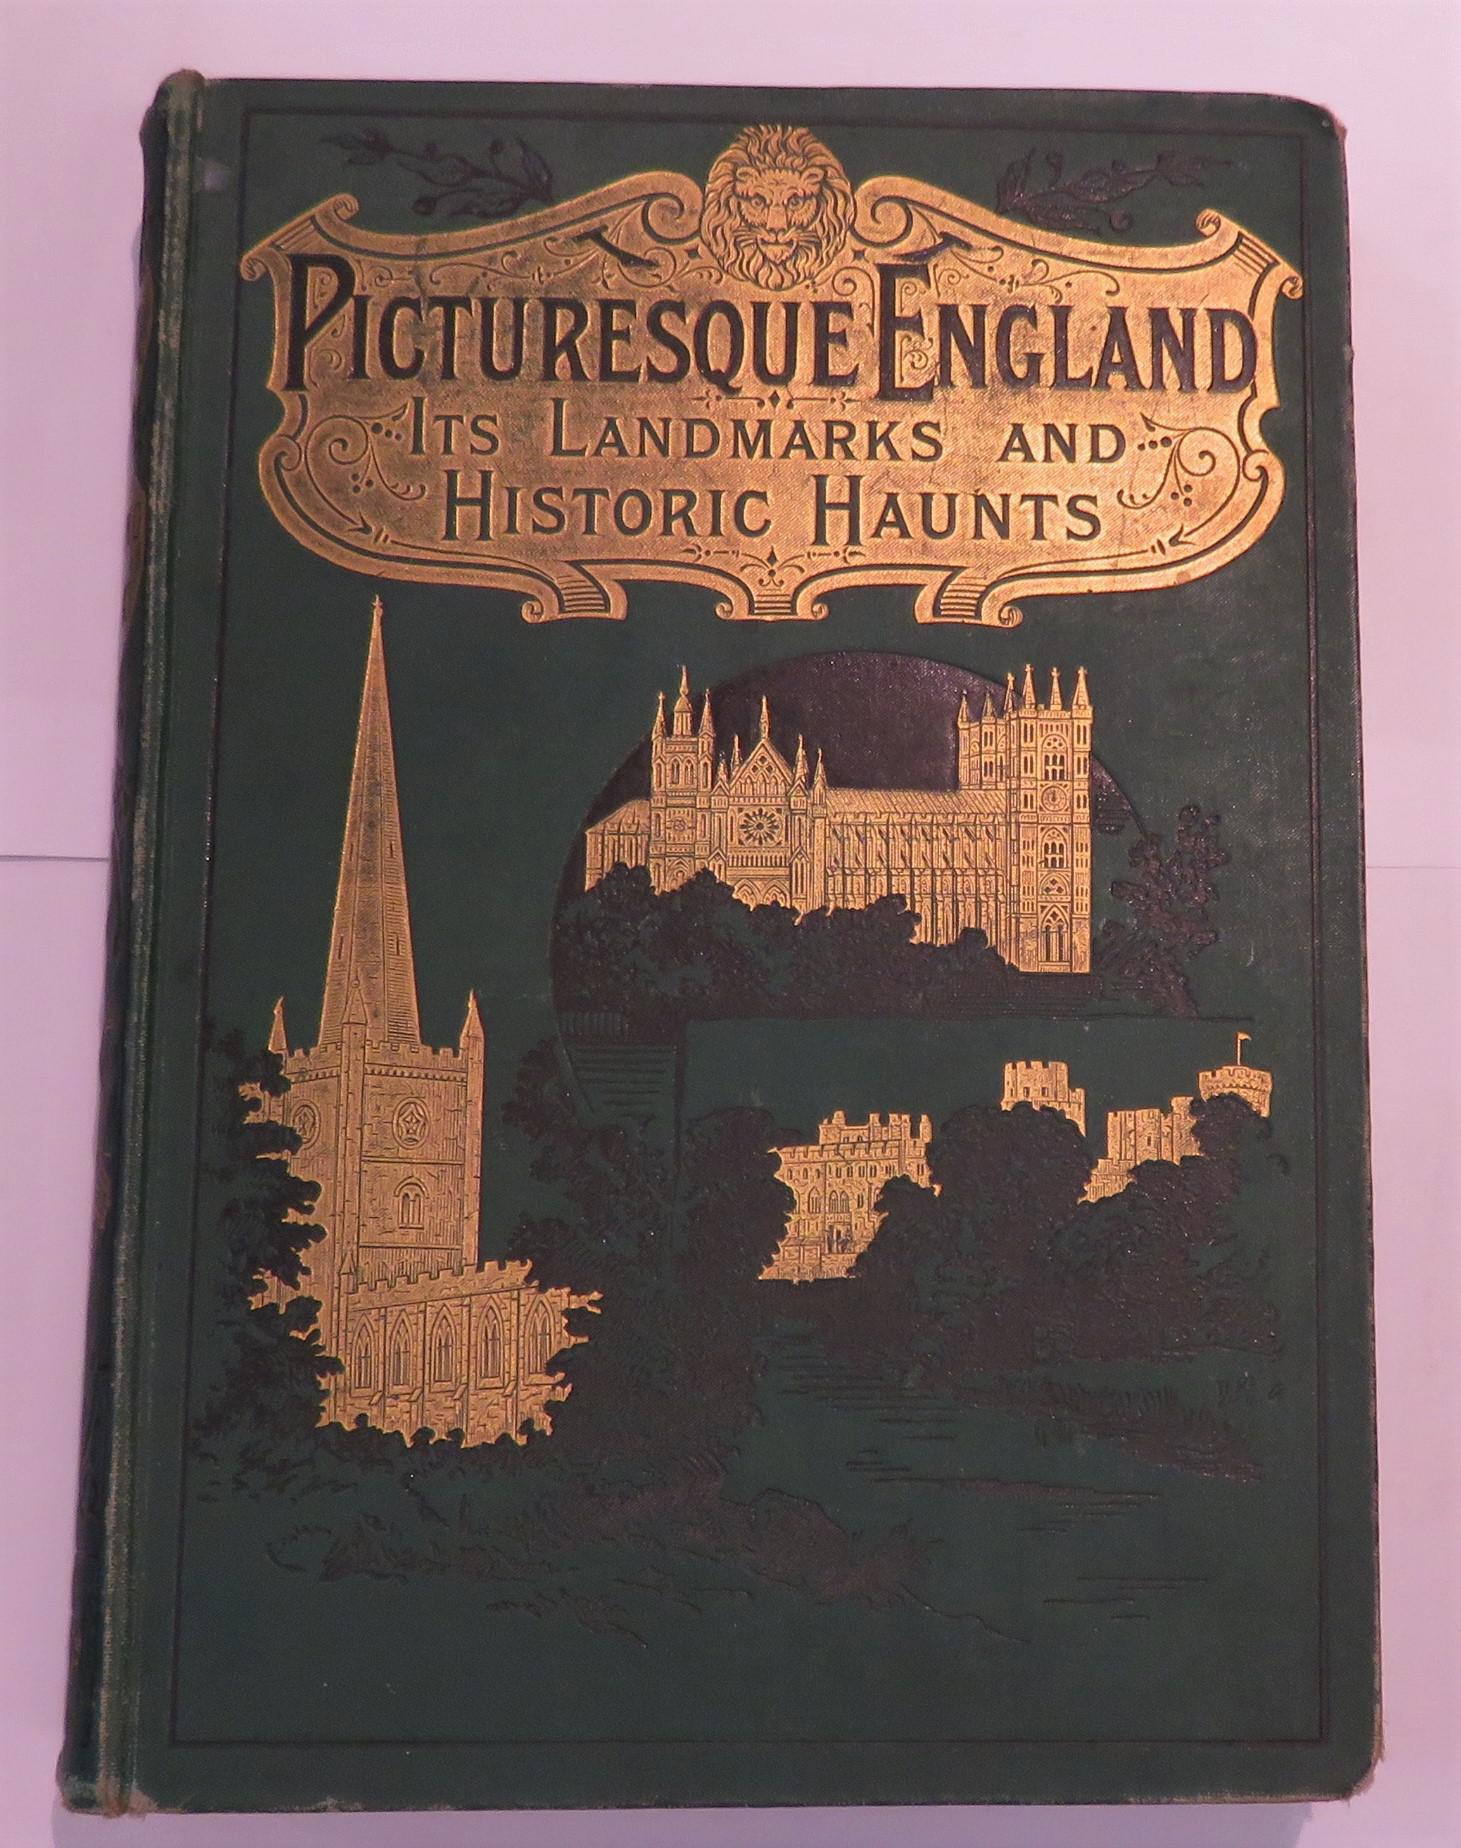 Picturesque England Its Landmarks And Historic Haunts As Described In Lay And Legend Song And Story